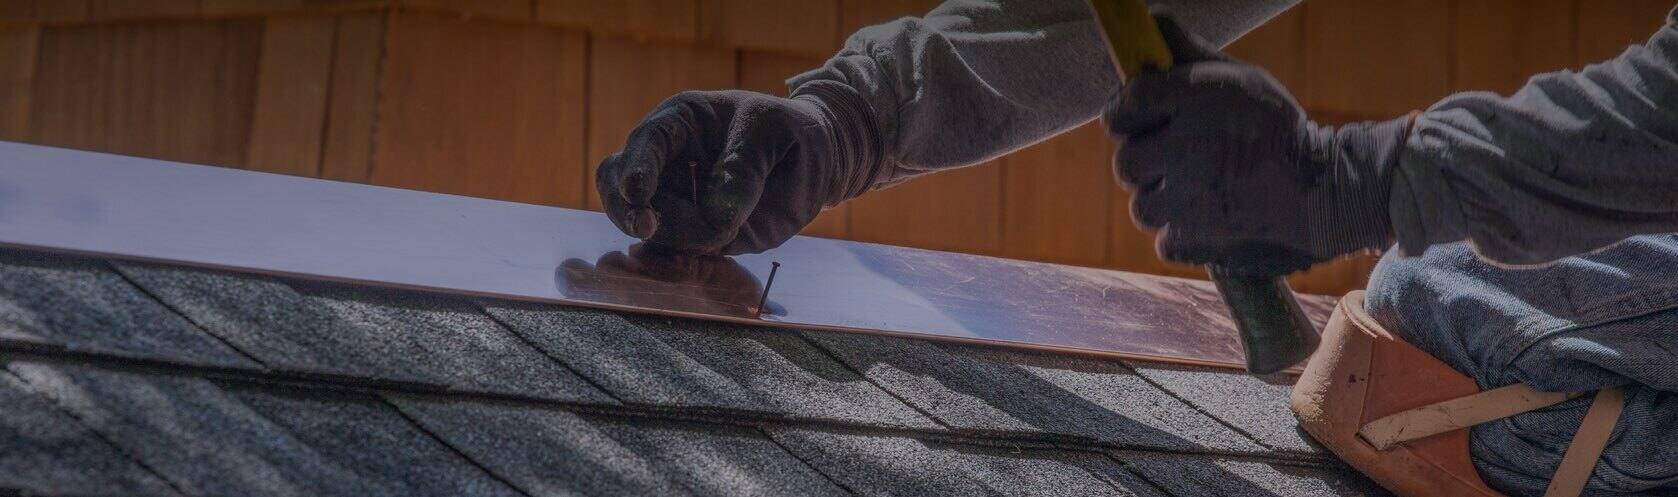 Local Roofing Contractors | Angi [Angie's List]